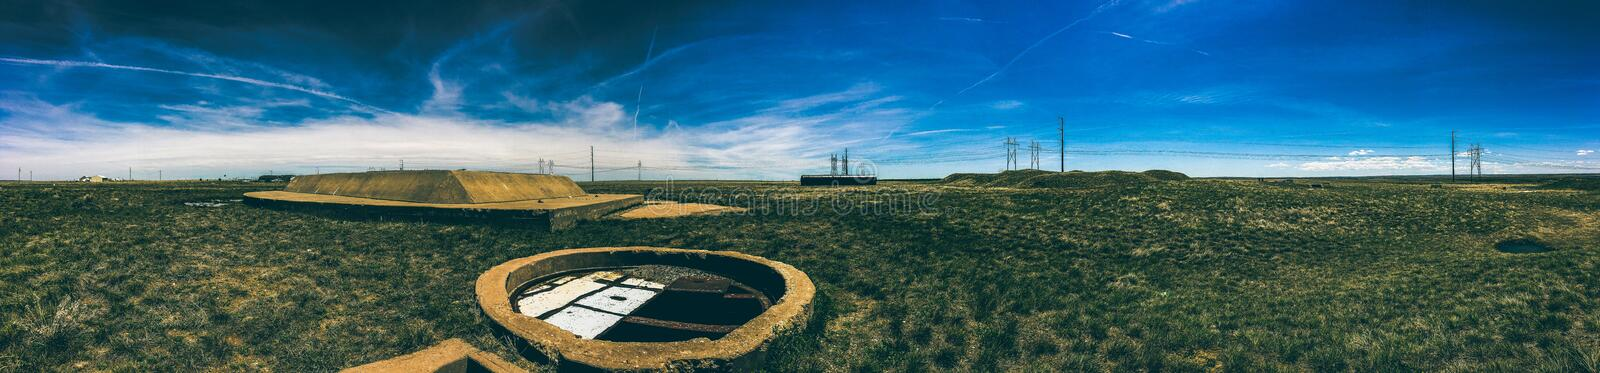 Landscape Aerial Photography stock photography